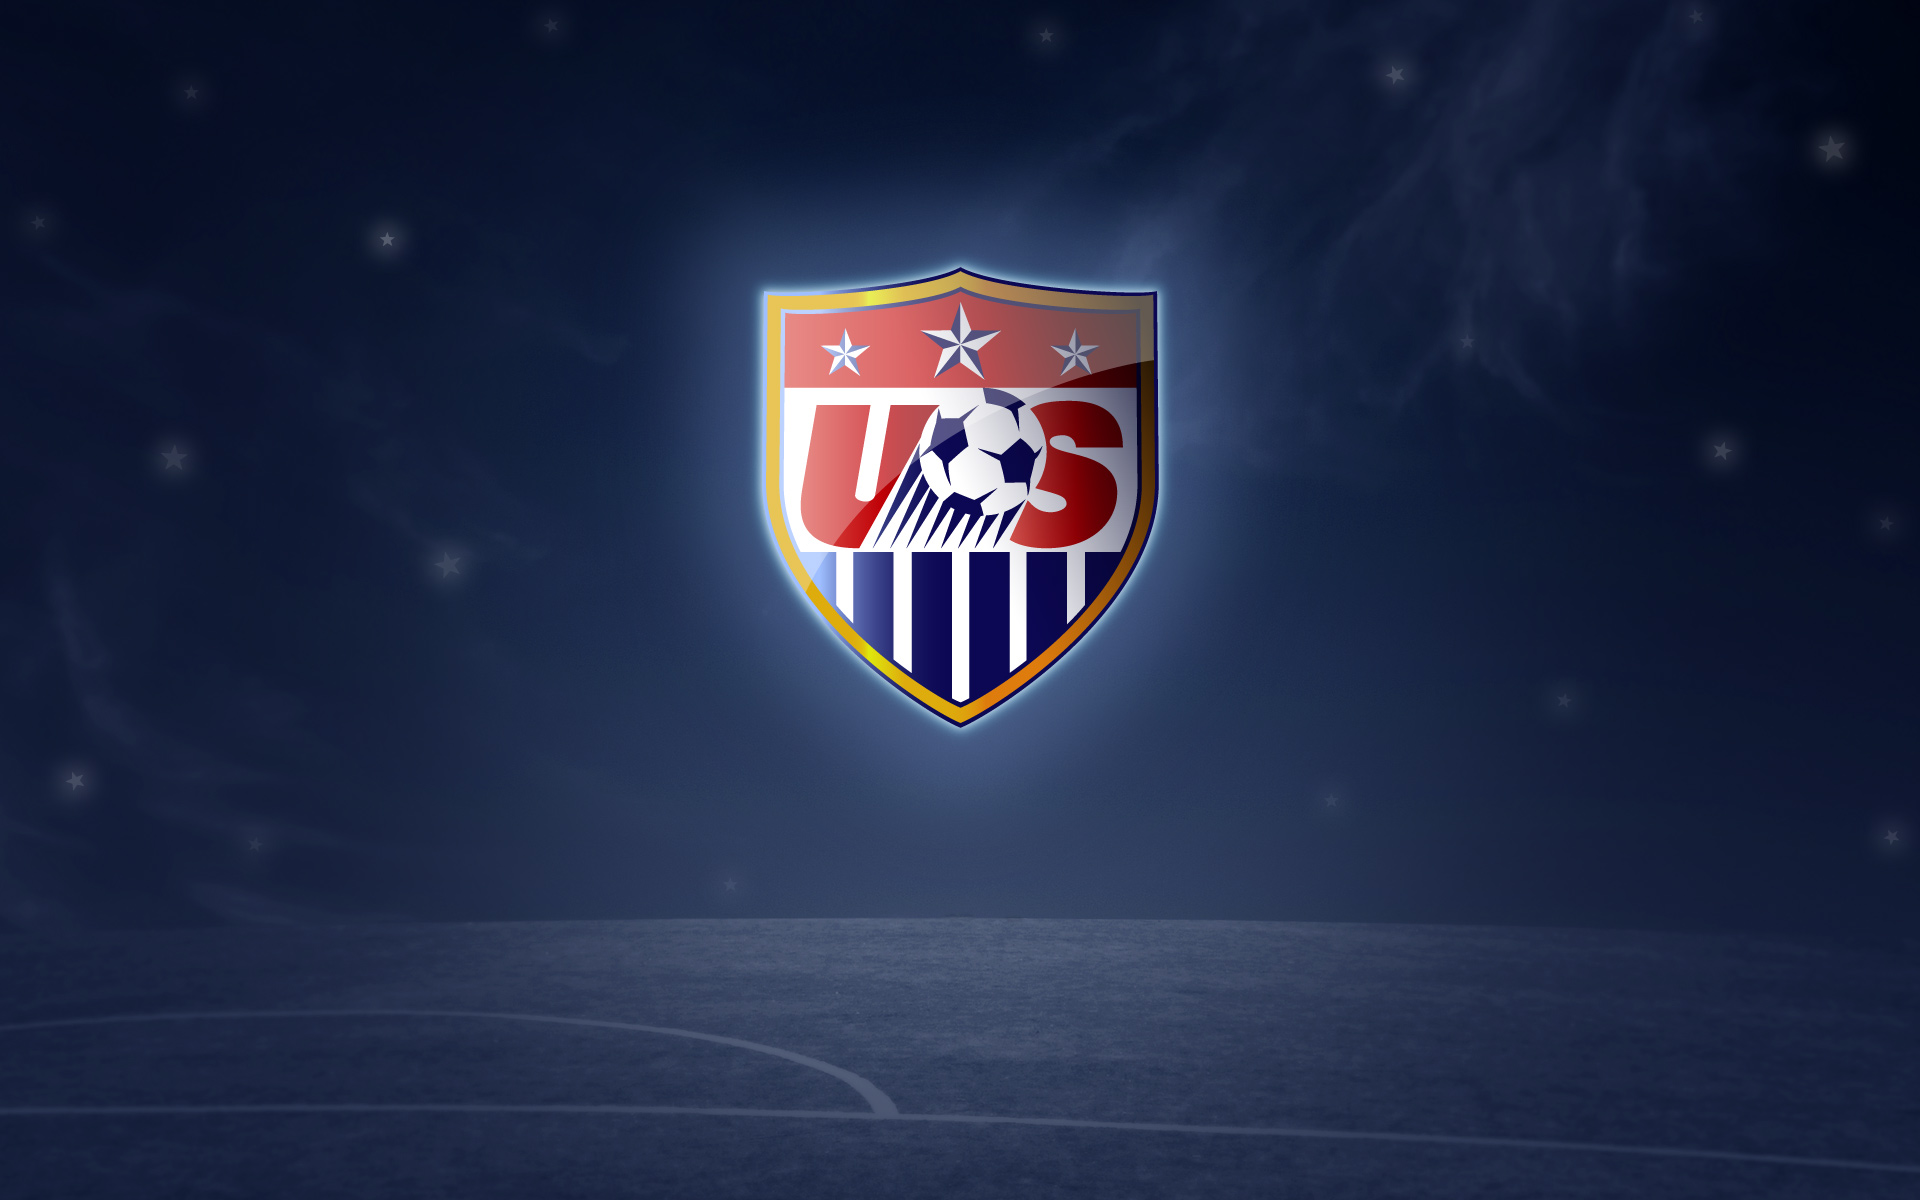 U.S. Soccer Logo Wallpaper